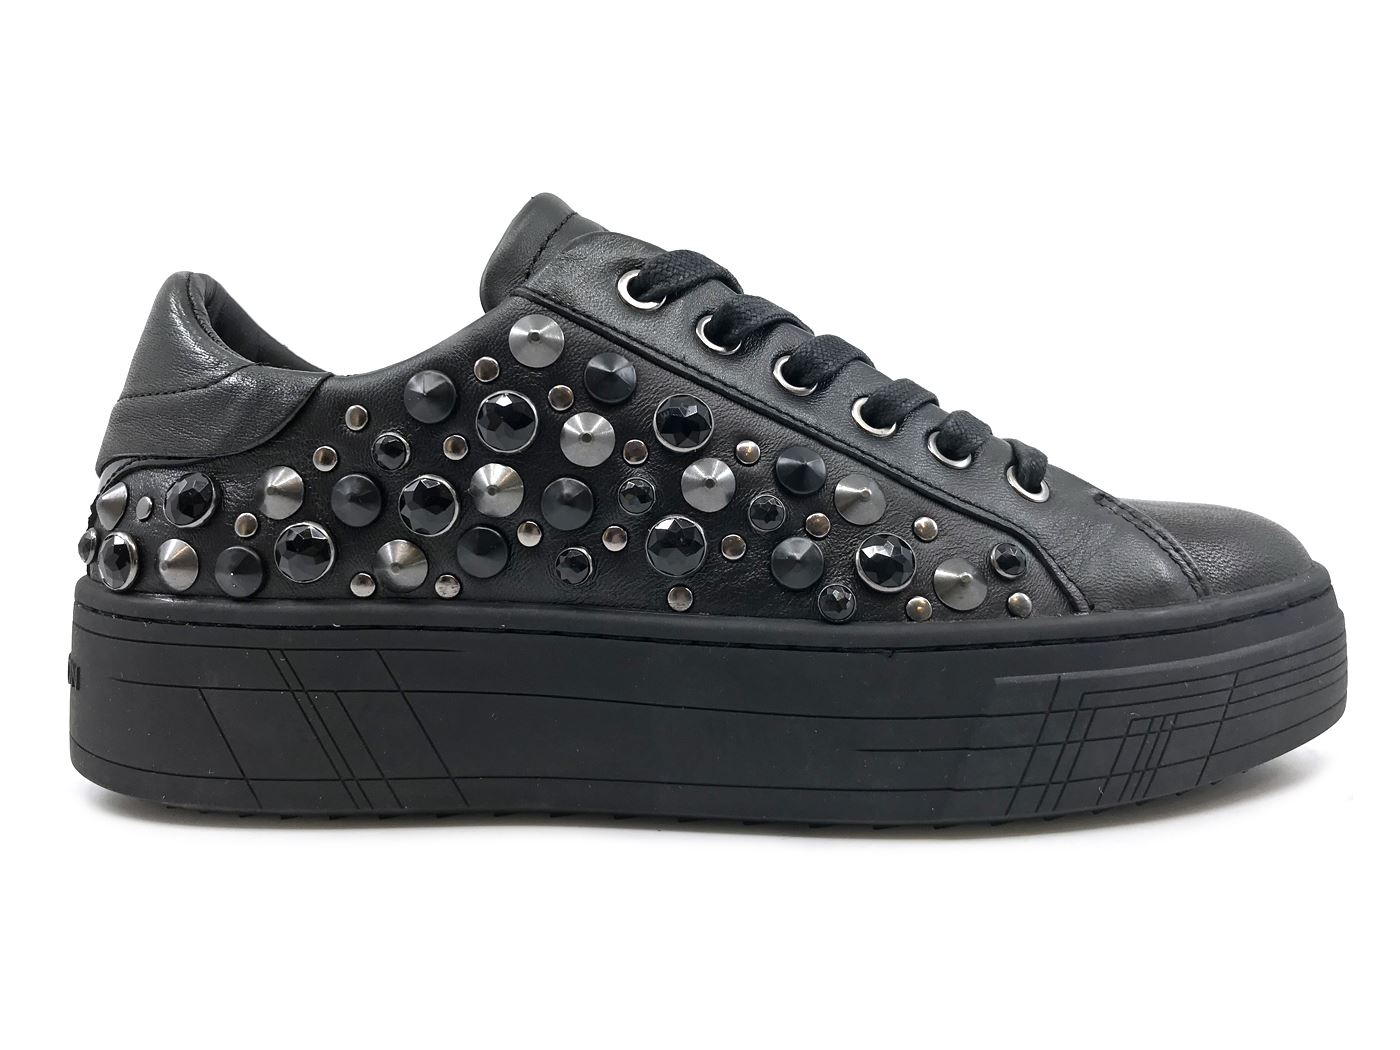 CRIME LONDON 25345 SNEAKER DONNA IN PELLE NERA